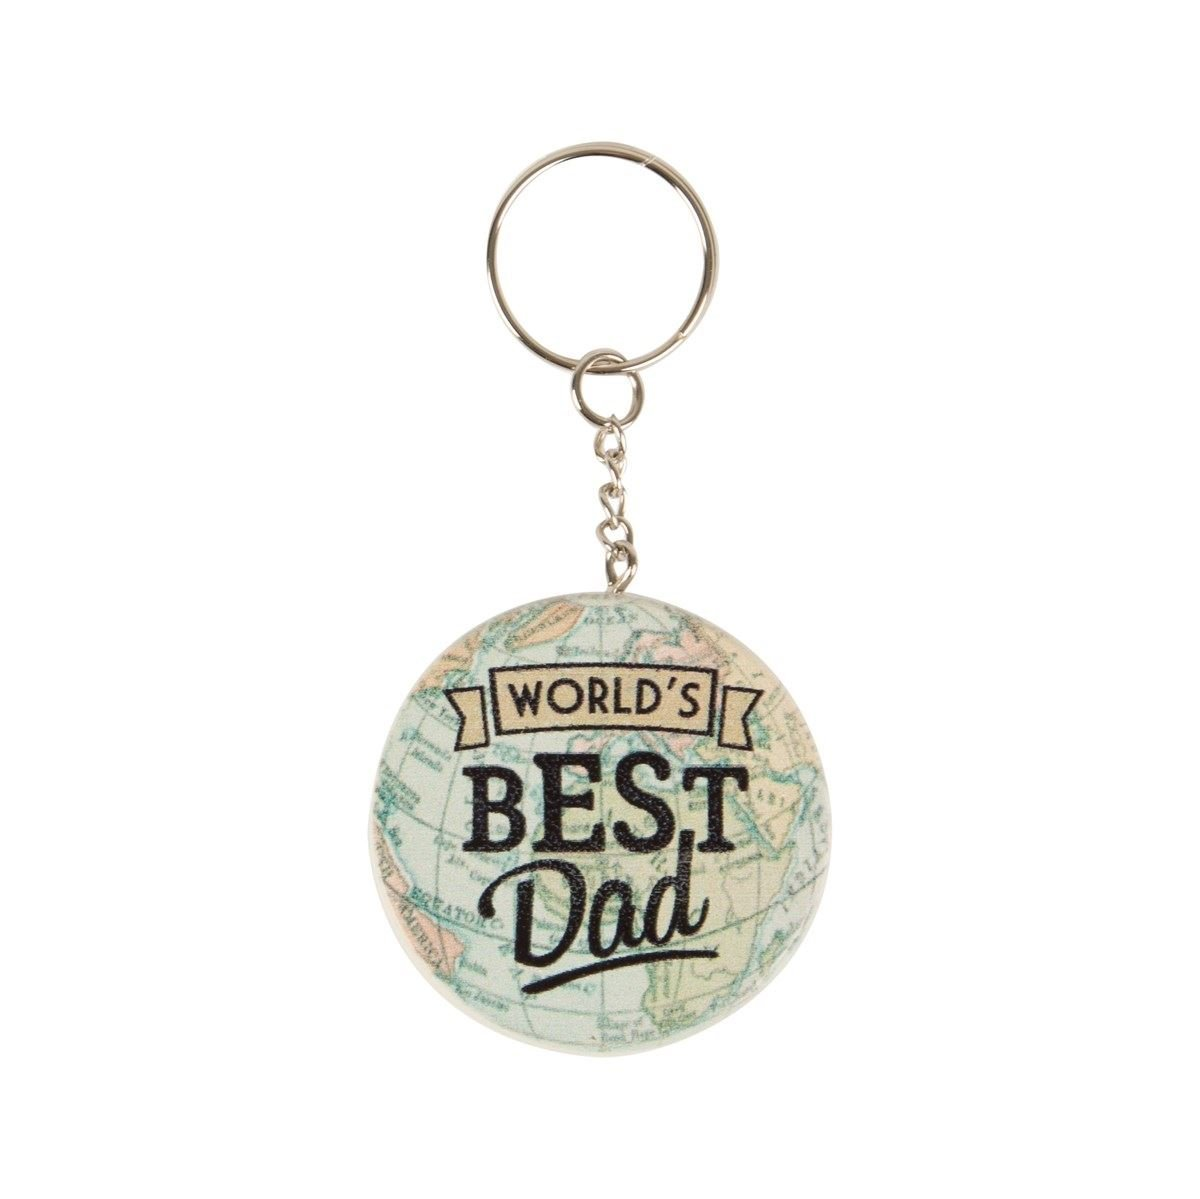 World's Best Dad Keyring image